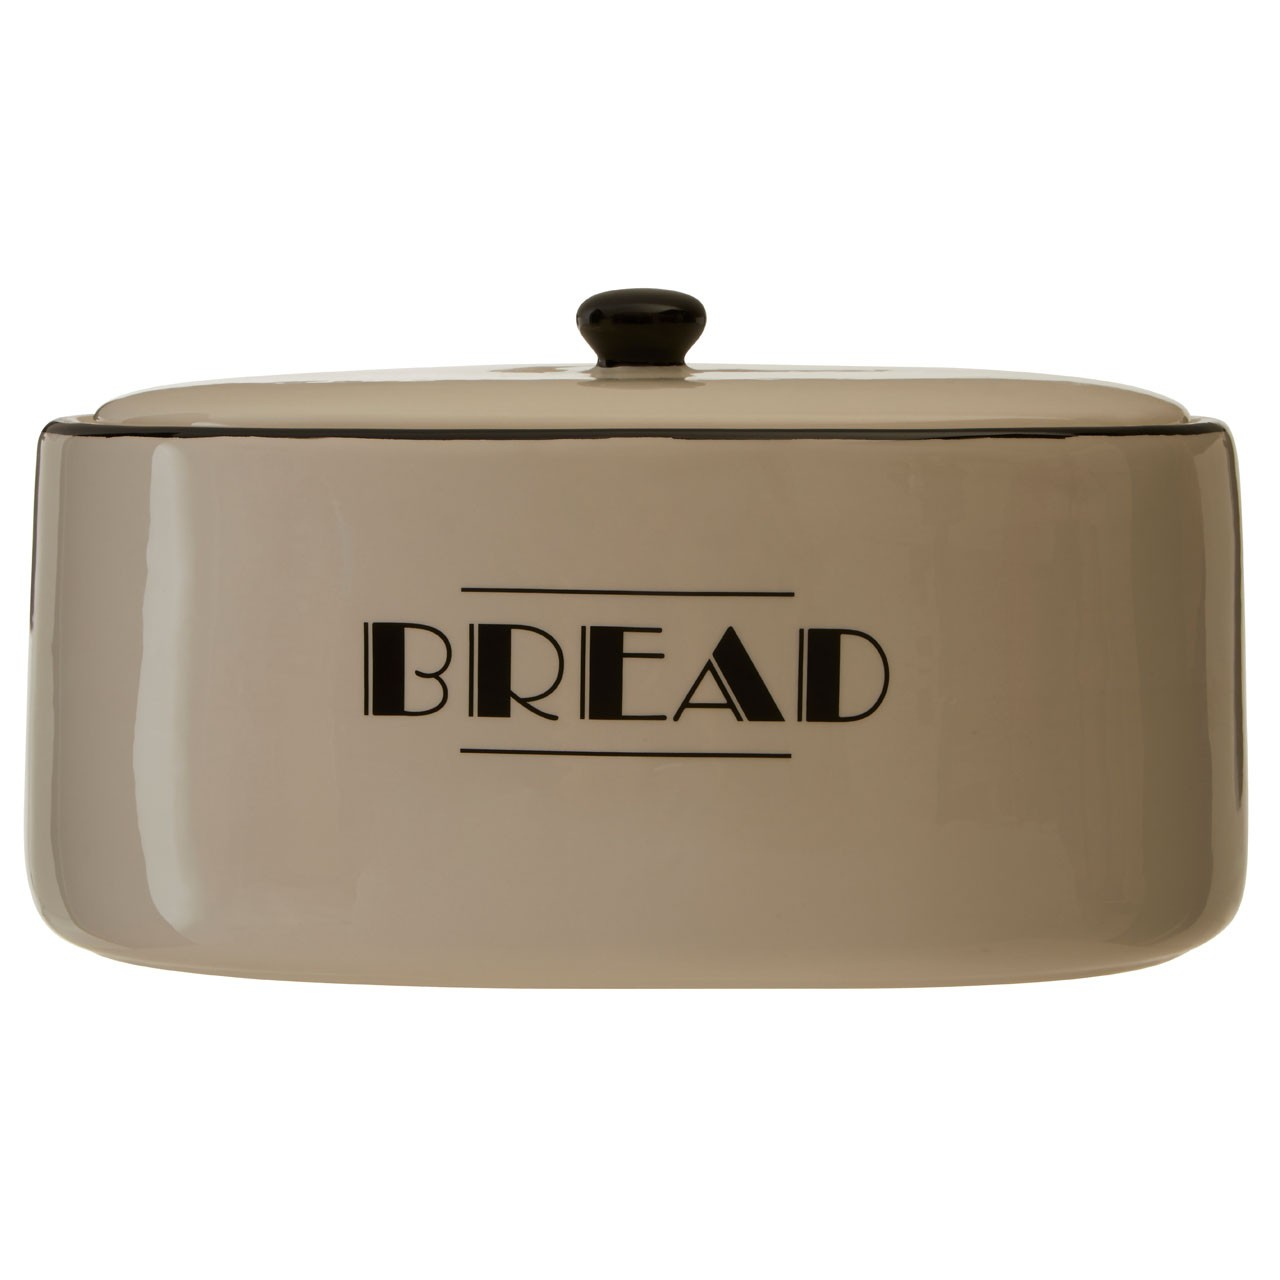 Broadway Bread Bin Food Kitchen Storage